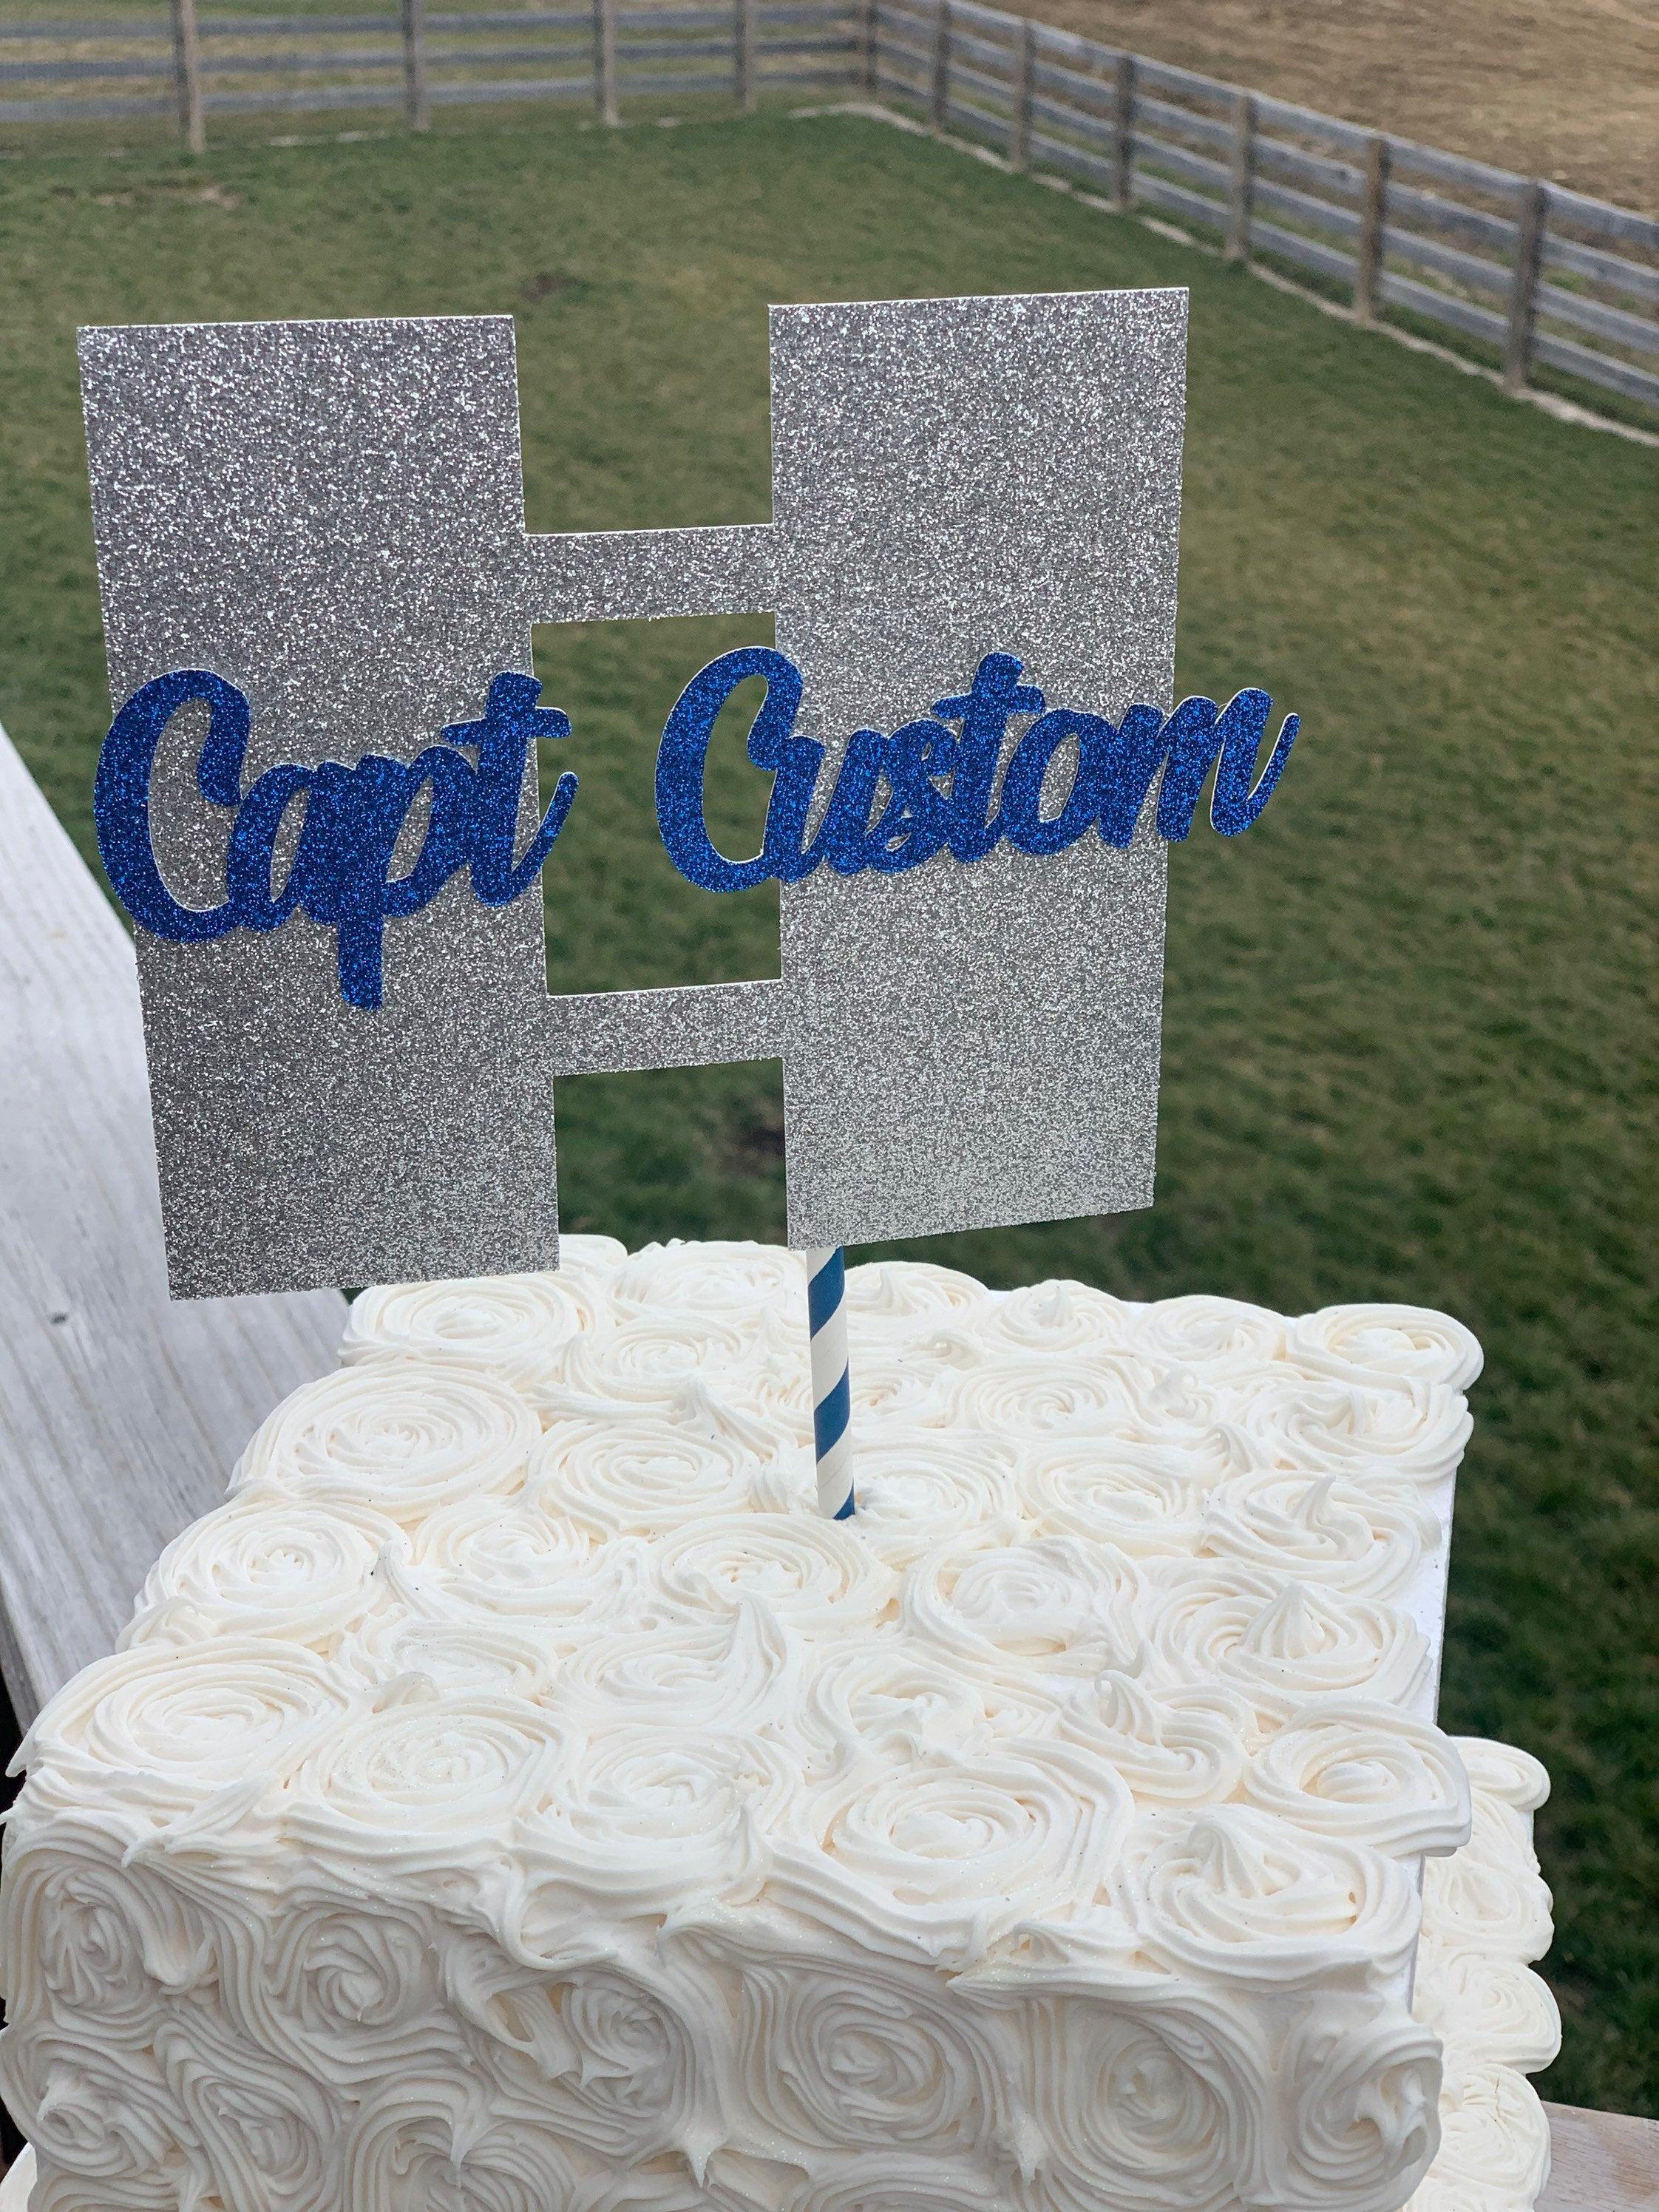 Customized Officer Rank Centerpieces or Cake Topper! So perfect for celebrating any officer in any branch!